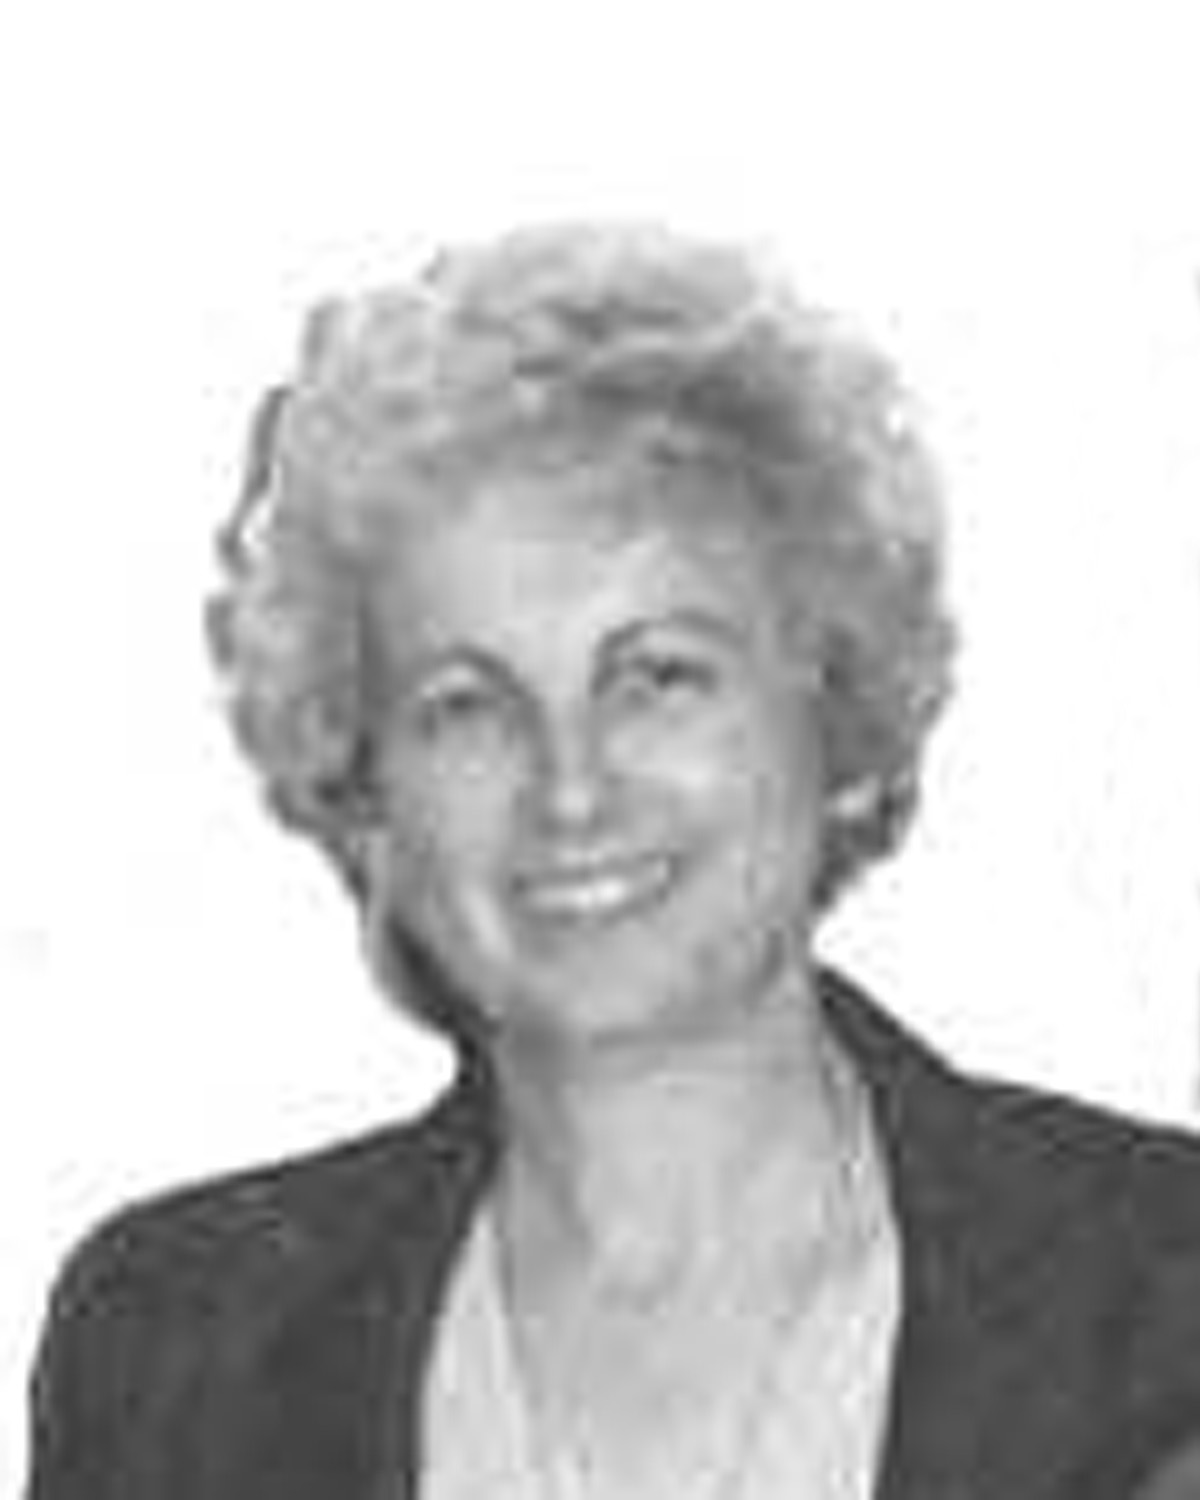 Colleen Brown Burt 1935-1996